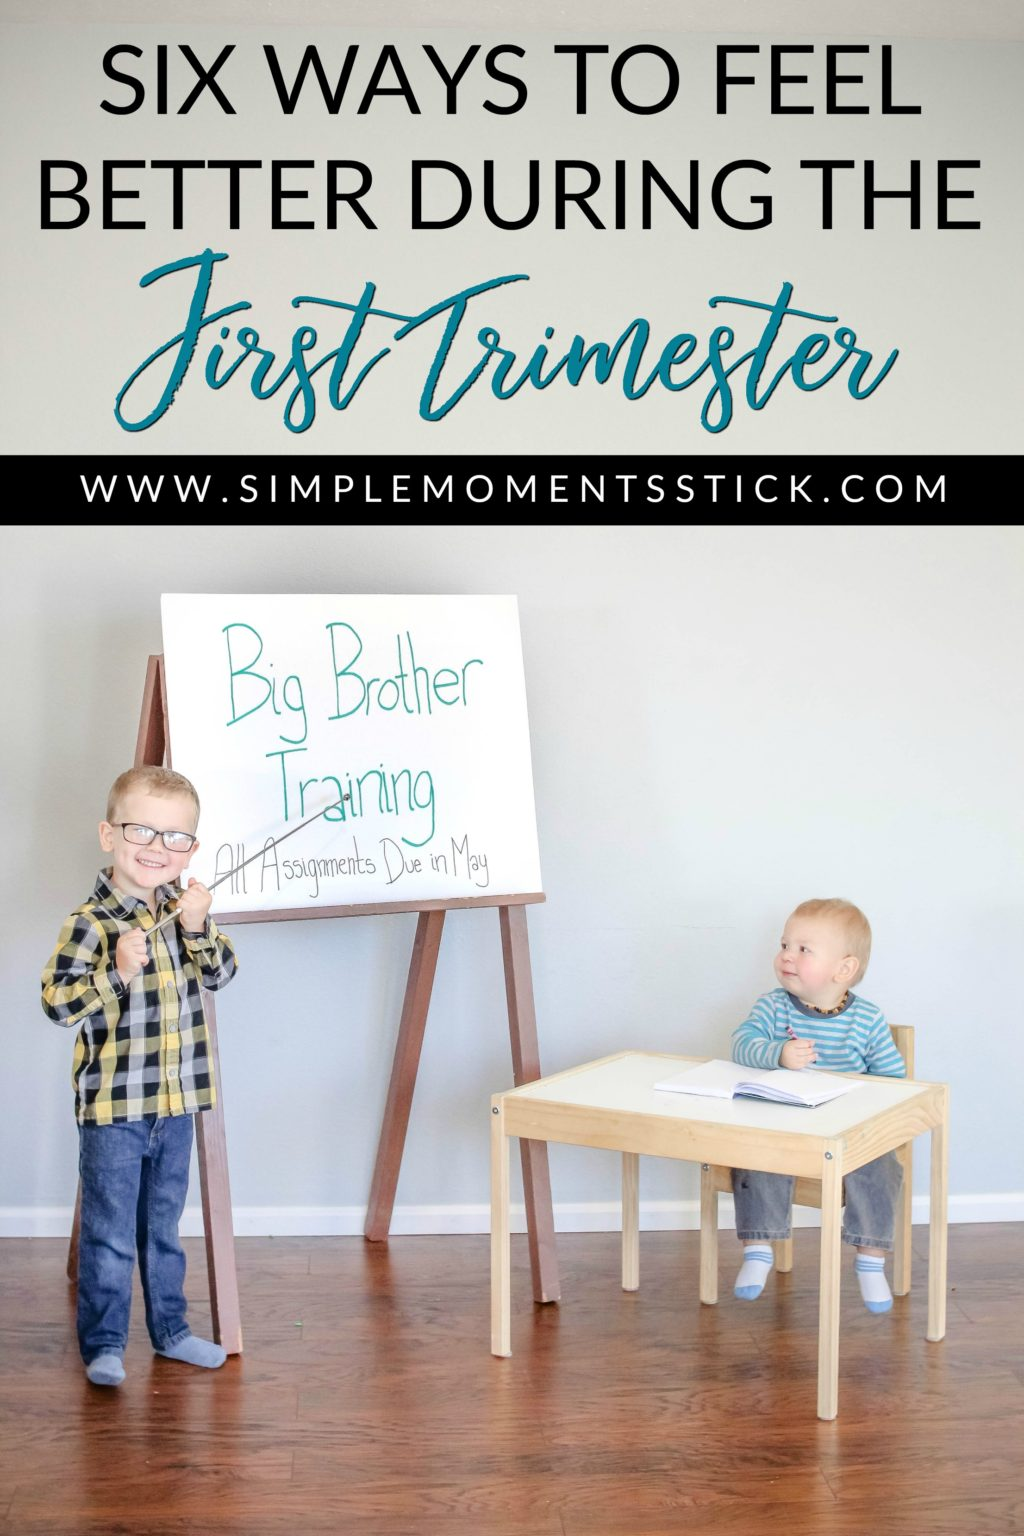 Ways to feel better during the first trimester